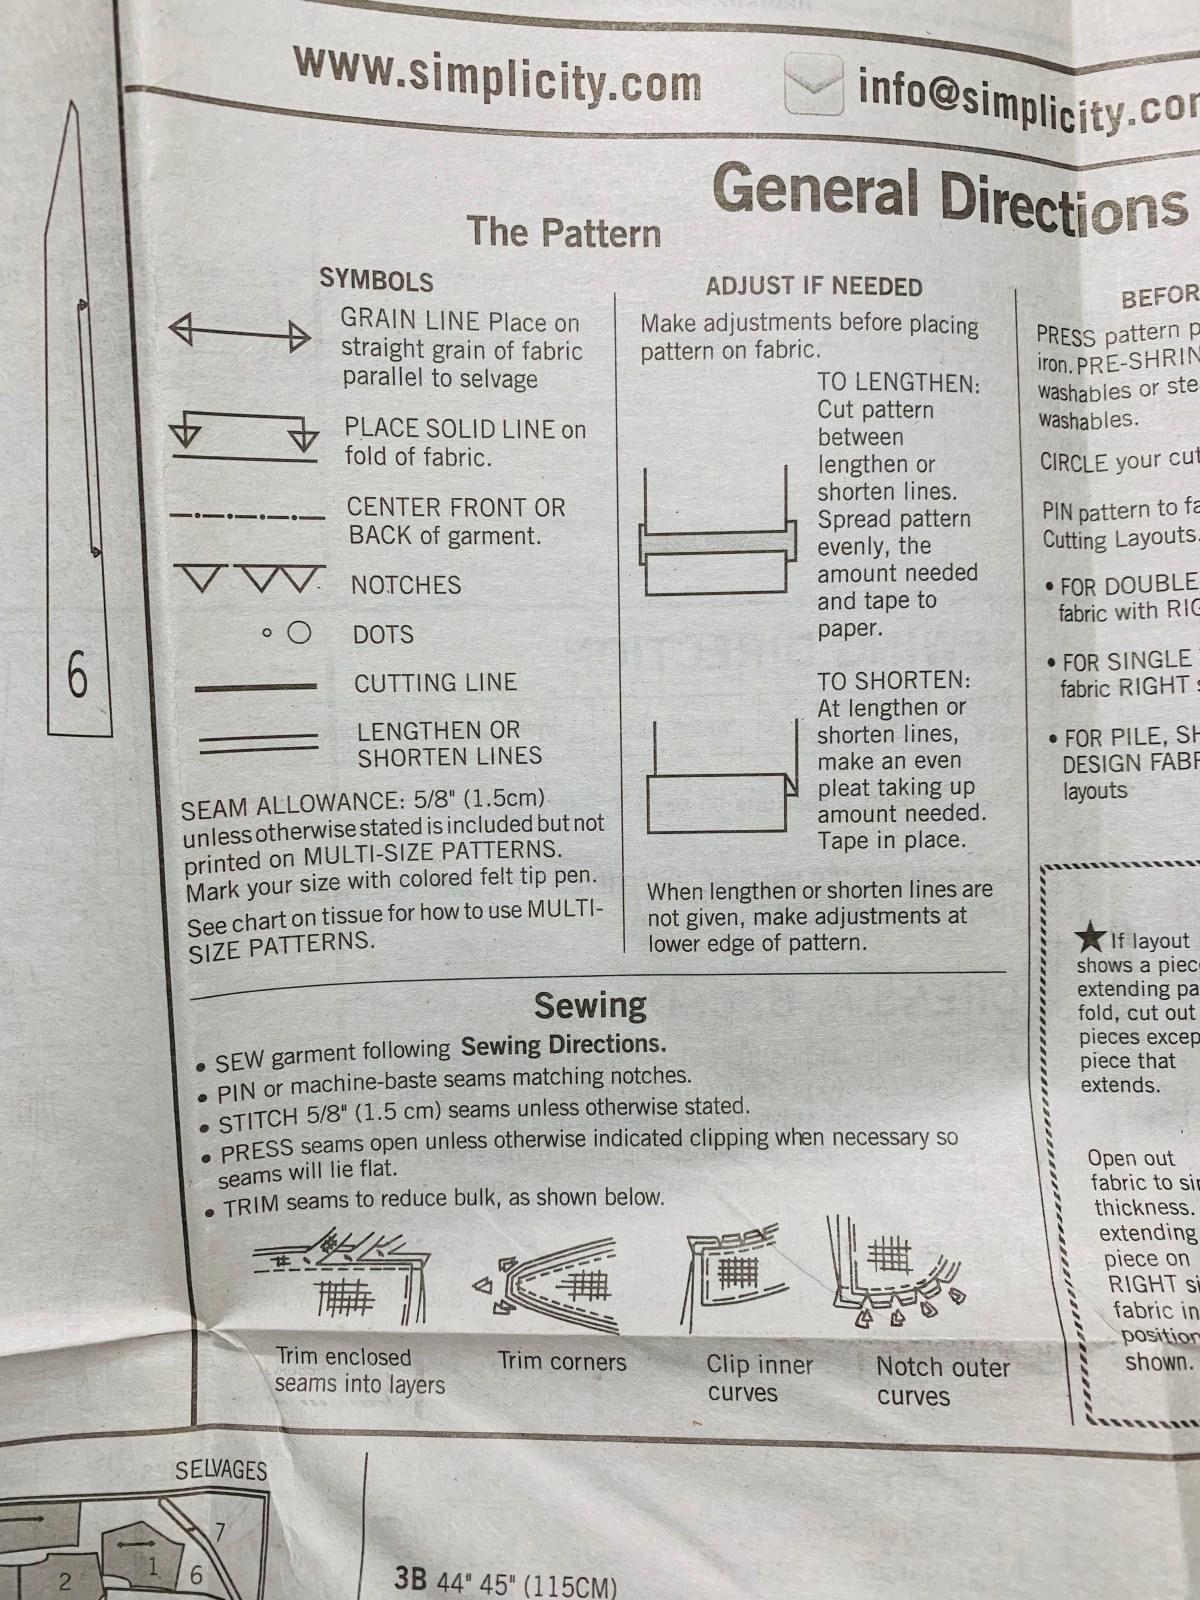 example of pattern marking on a sewing pattern